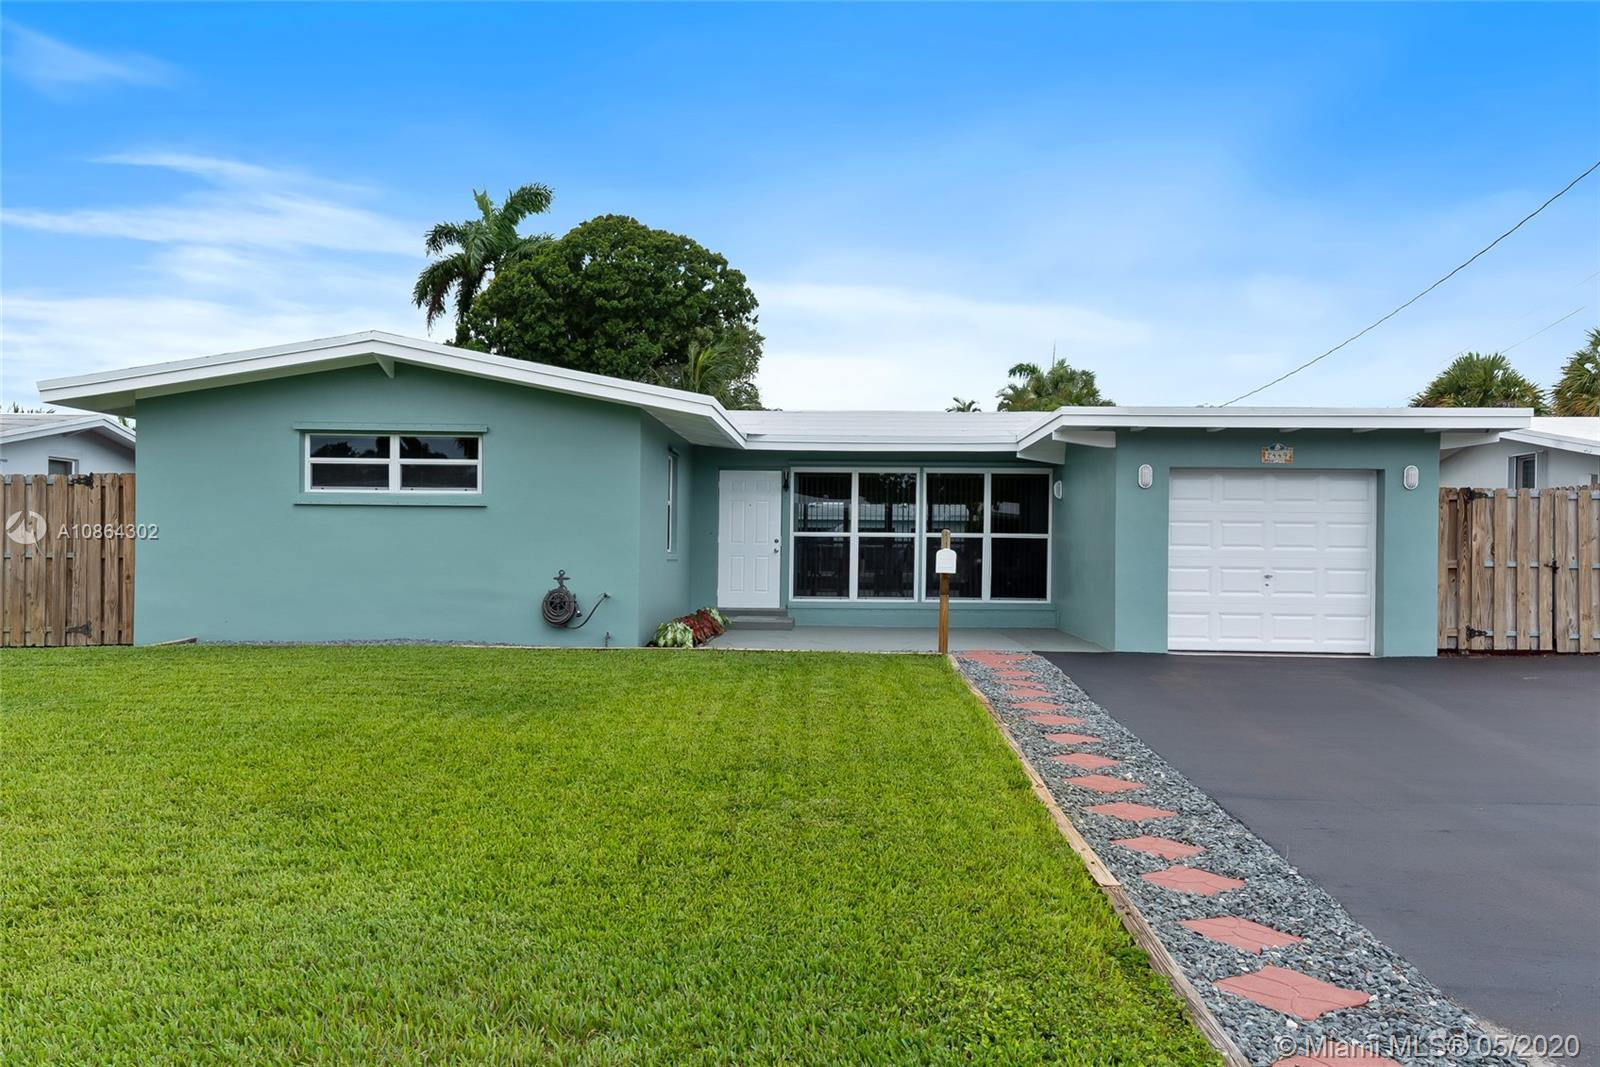 Spacious waterfront home with ocean access in Lauderdale Isles (Riverland) features 3 bedrooms, 2 bathrooms, 1-car garage, new roof (2019), 2 A/C units (2020 and 2013), built-up seawall w/ footers & tiebacks, updated wood dock w/ 3 pilings, 10,000lb boat lift w/ access to electric & plumbing, laundry room w/ storage, soaring vaulted wood ceilings, tile flooring throughout, newly painted interior and exterior, lots of natural lighting, updated windows and hurricane shutters, updated electrical, 65ft waterfront footage, 60ft canal width, and the only fixed bridge is I-95 (just over 50ft).  Prime location on a dead-end street, minutes from highway, downtown and the beaches, and less than a mile away from public boat ramp.  Check out the Virtual Tour (Matterport) for an exclusive online tour.